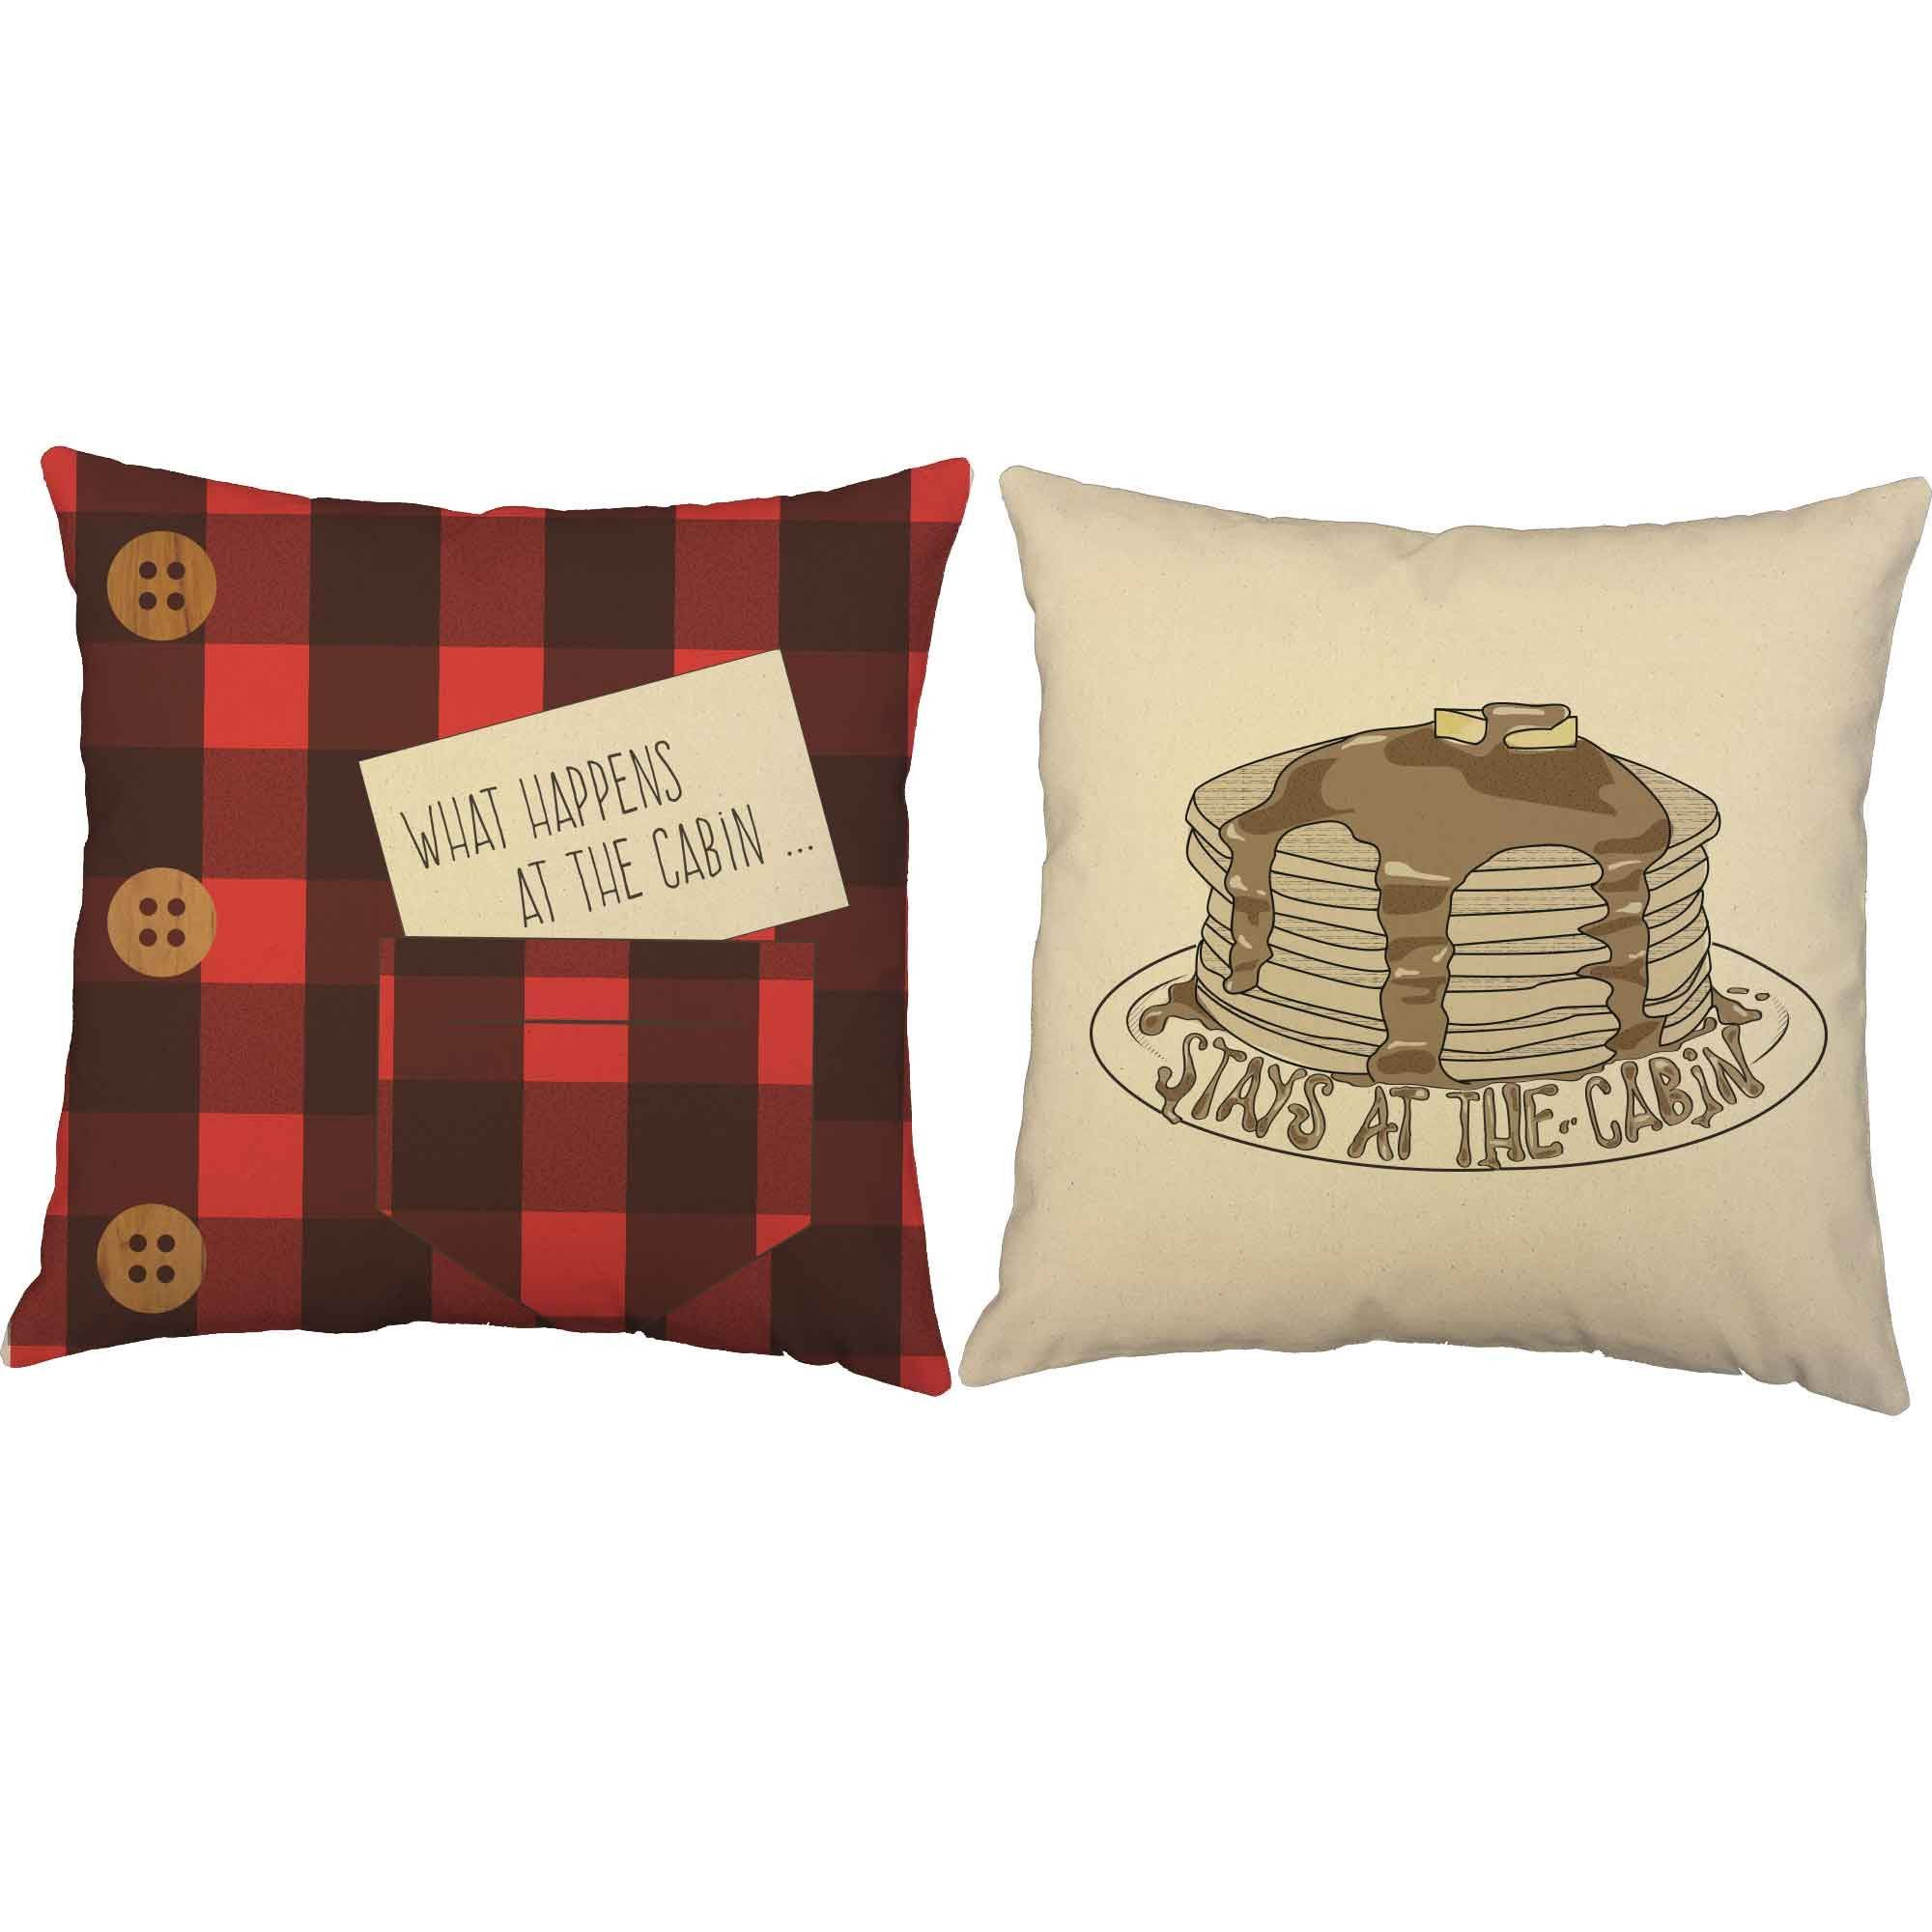 What Happens at the Cabin Throw Pillows | Golden rule, Cabin and ...